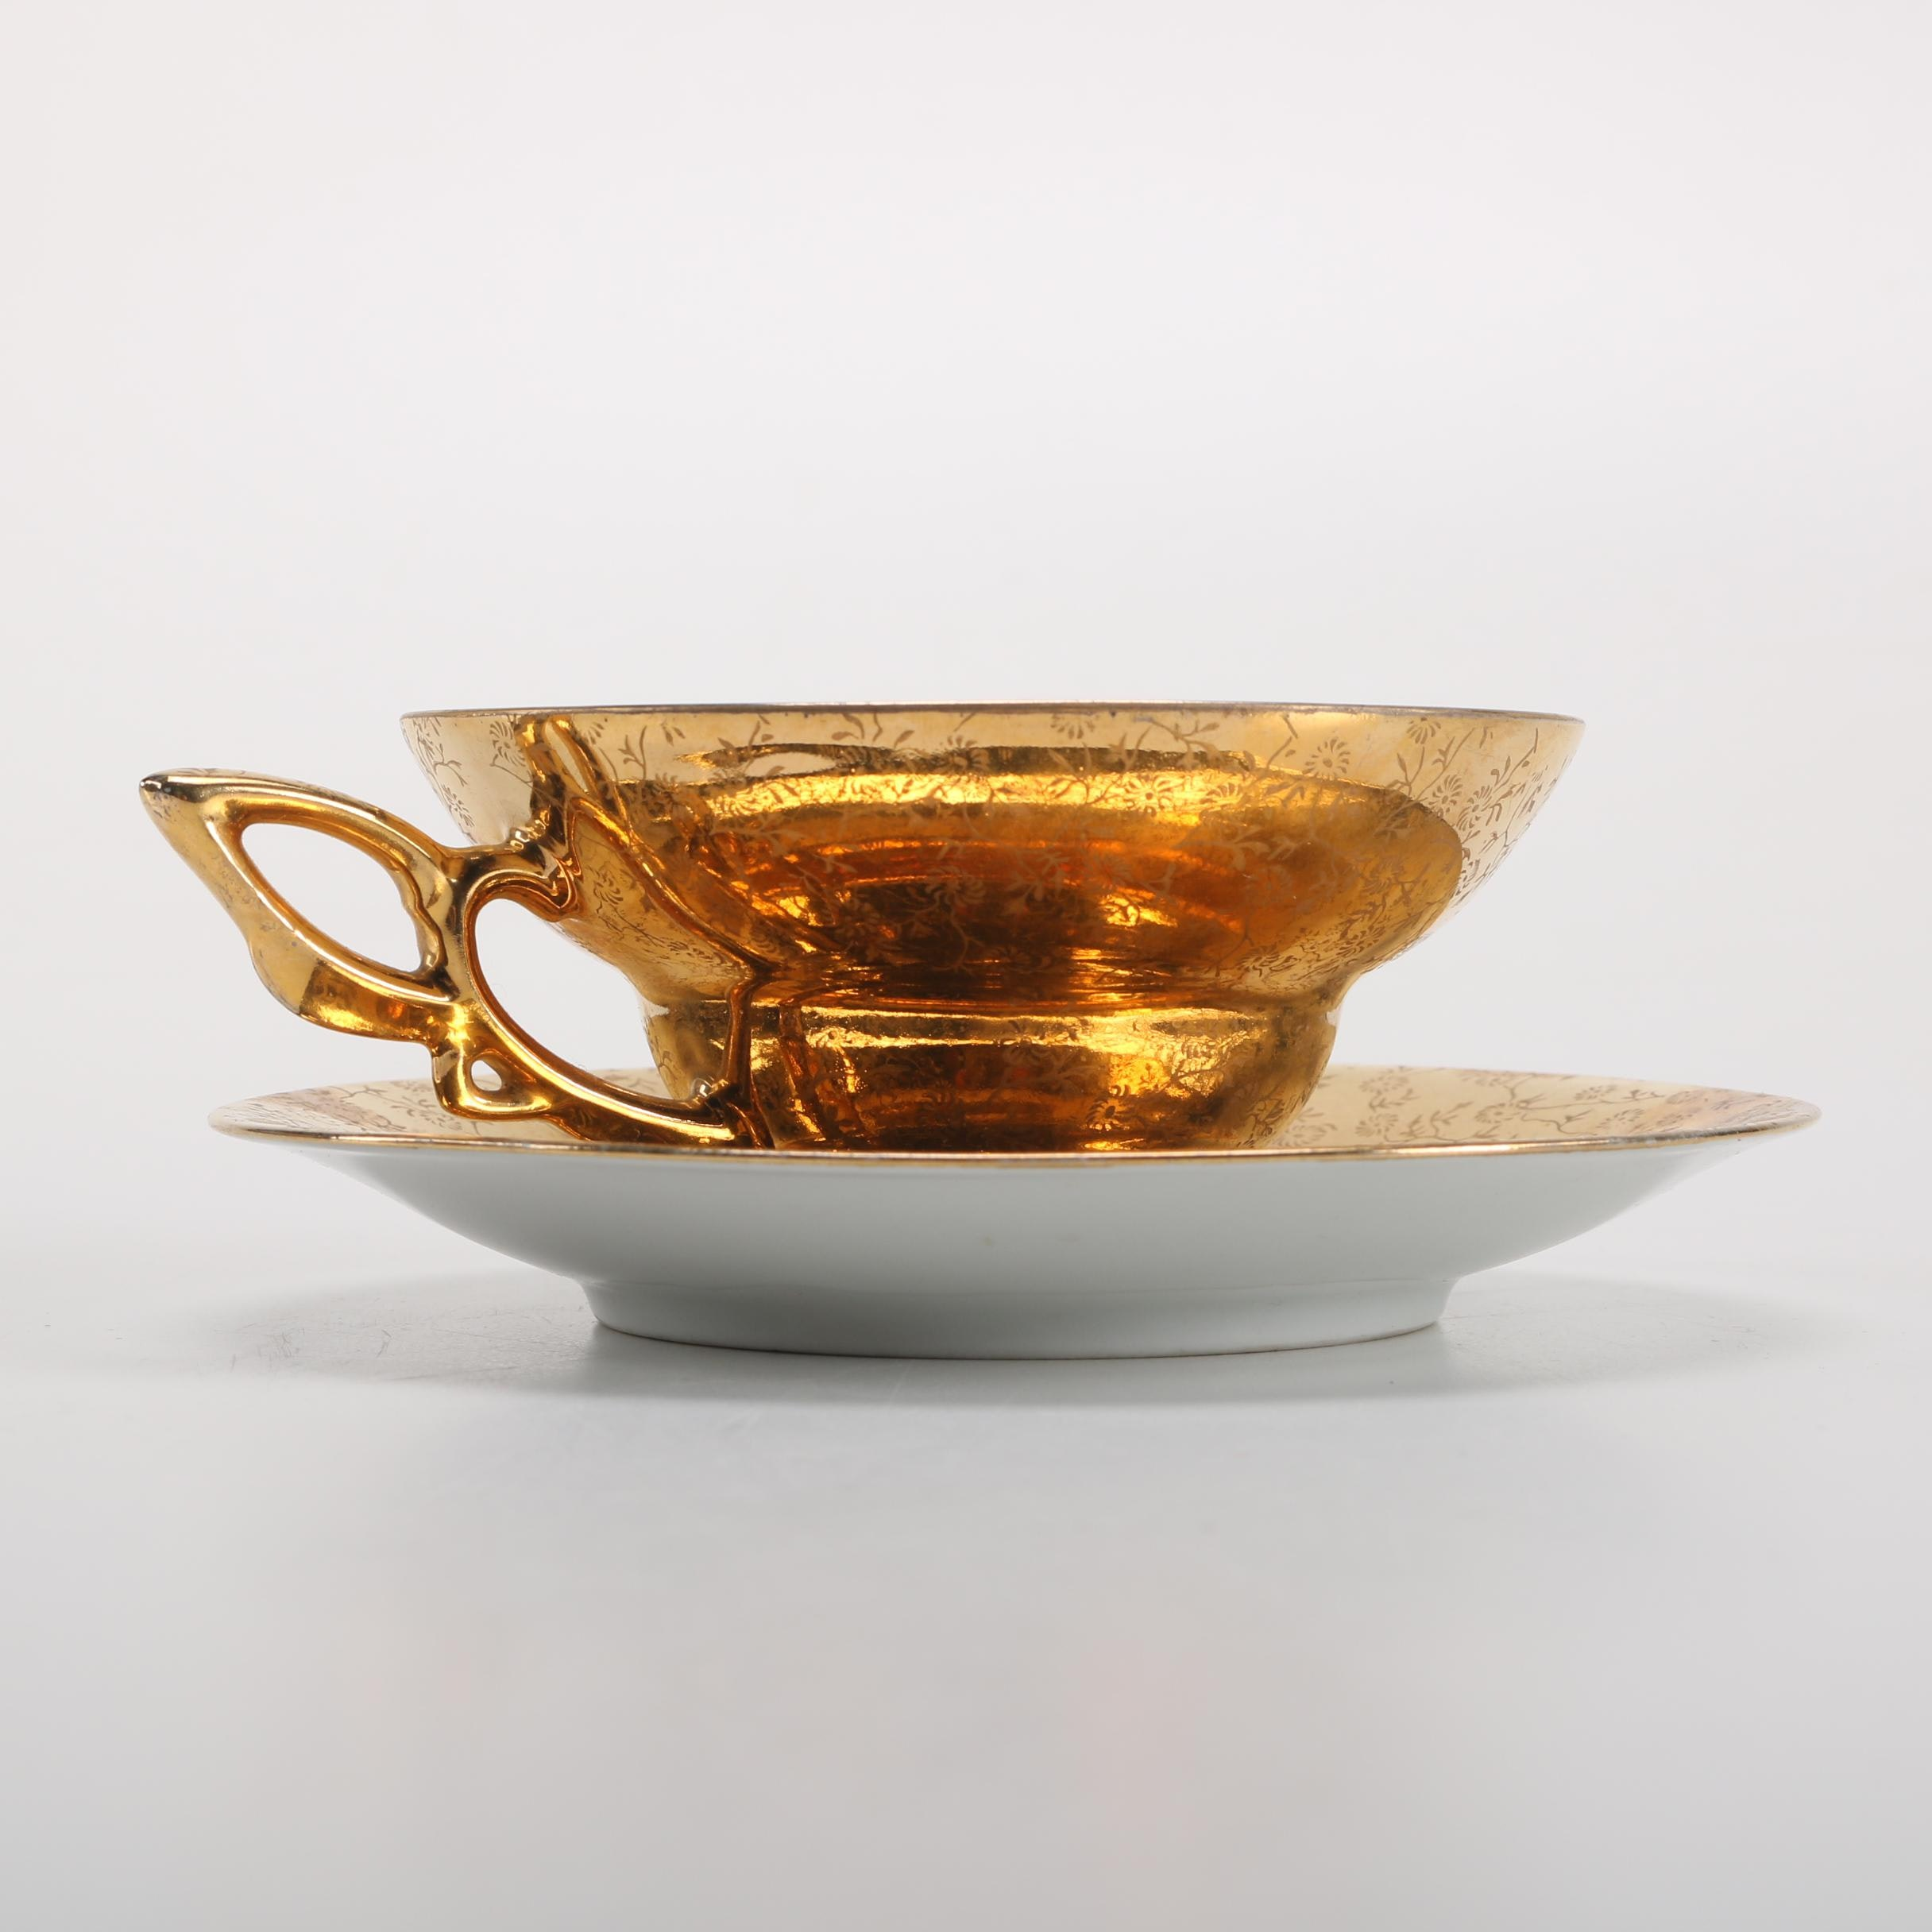 Plankenhammer Floss Gold-Plated Porcelain Teacup and Saucer